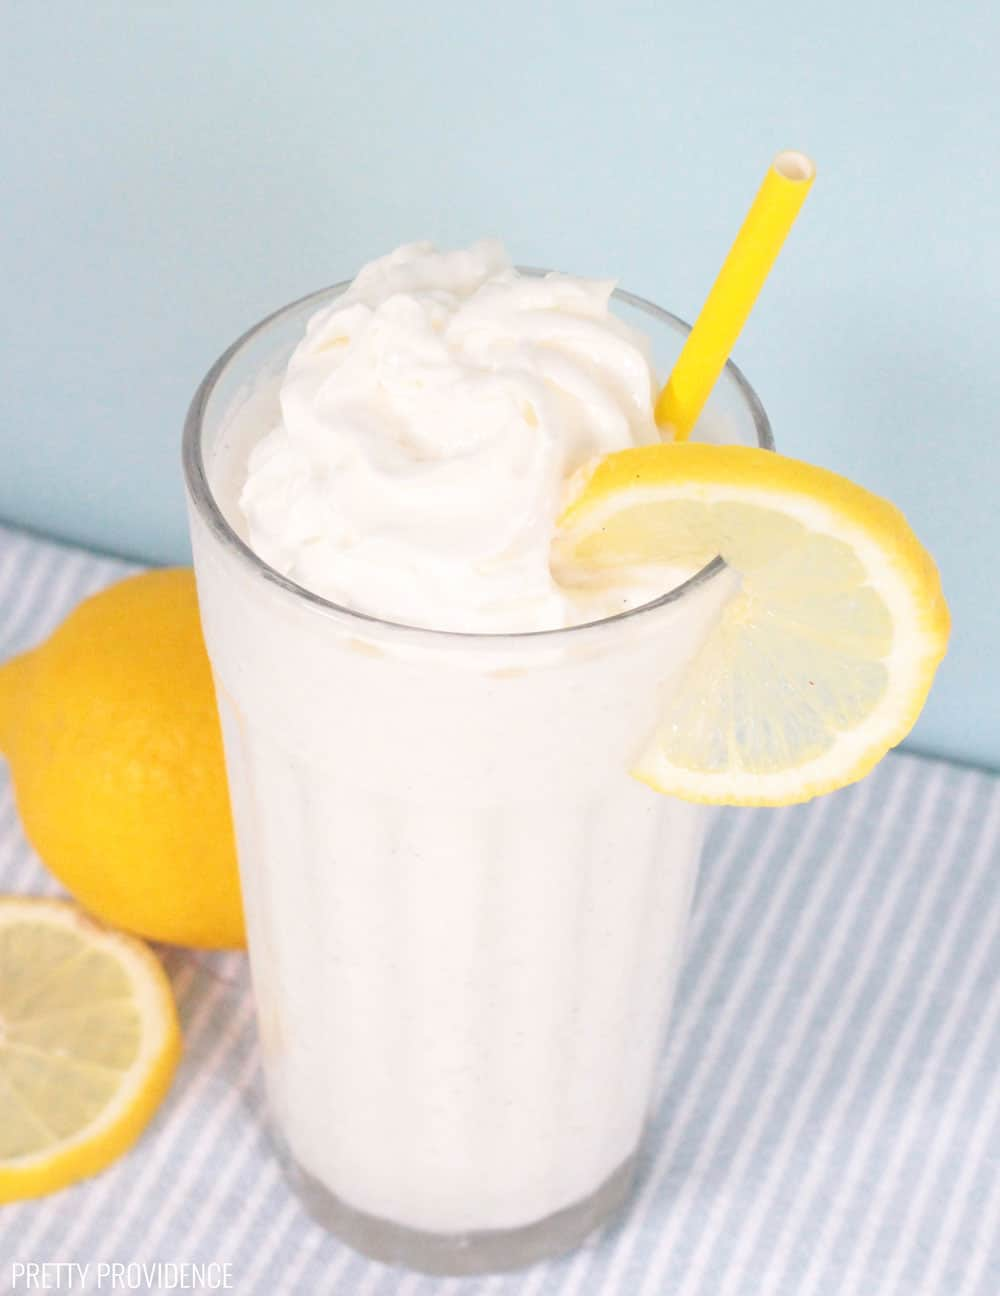 Frozen lemonade in a clear glass with ice cream, whipped cream on top, and garnished with a lemon slice and yellow straw.